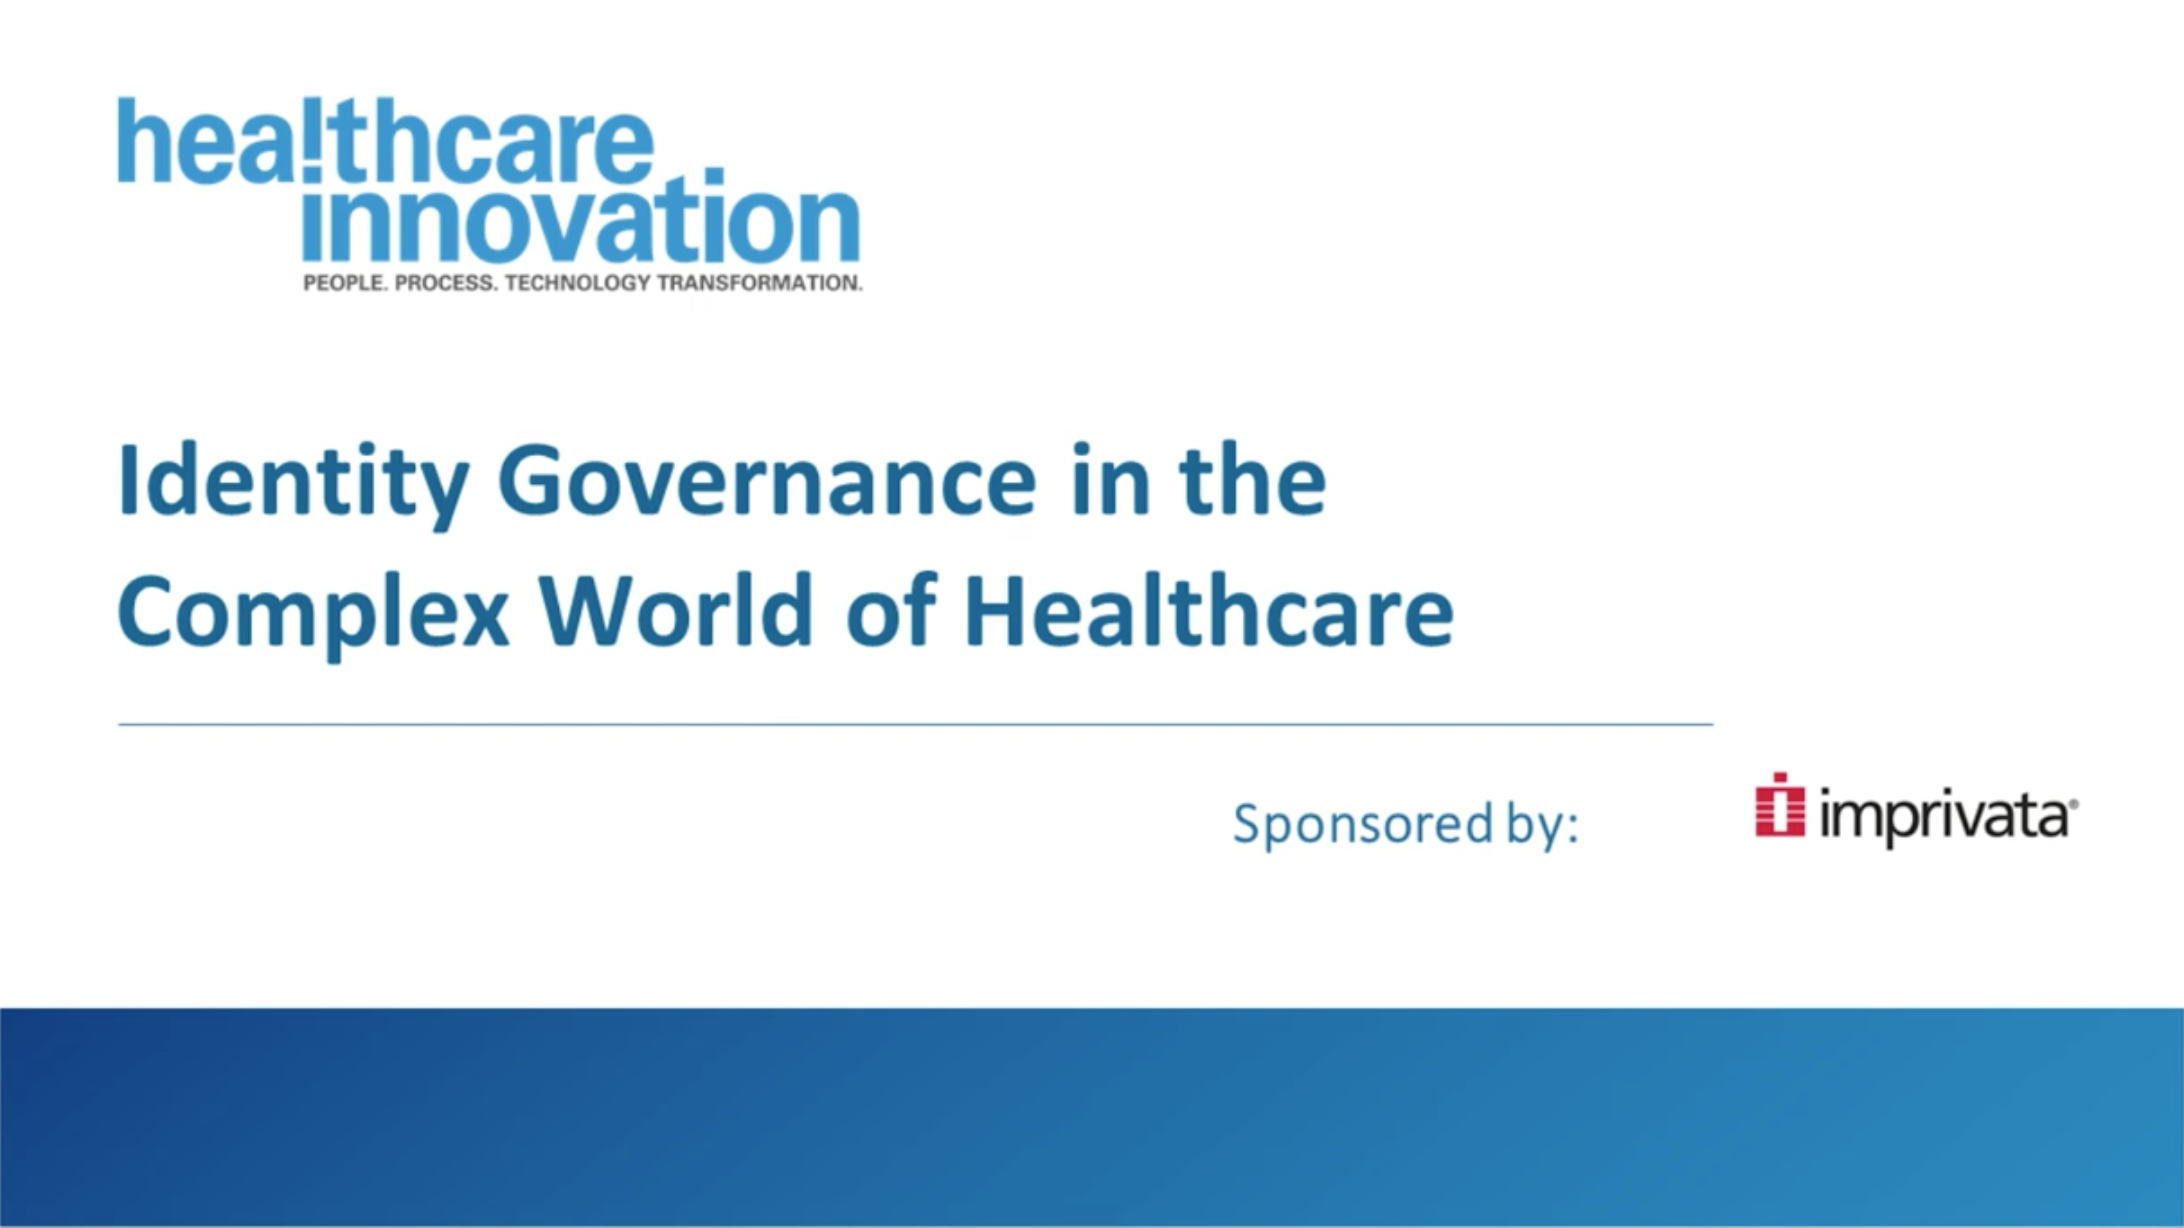 Identity Governance in the Complex World of Healthcare